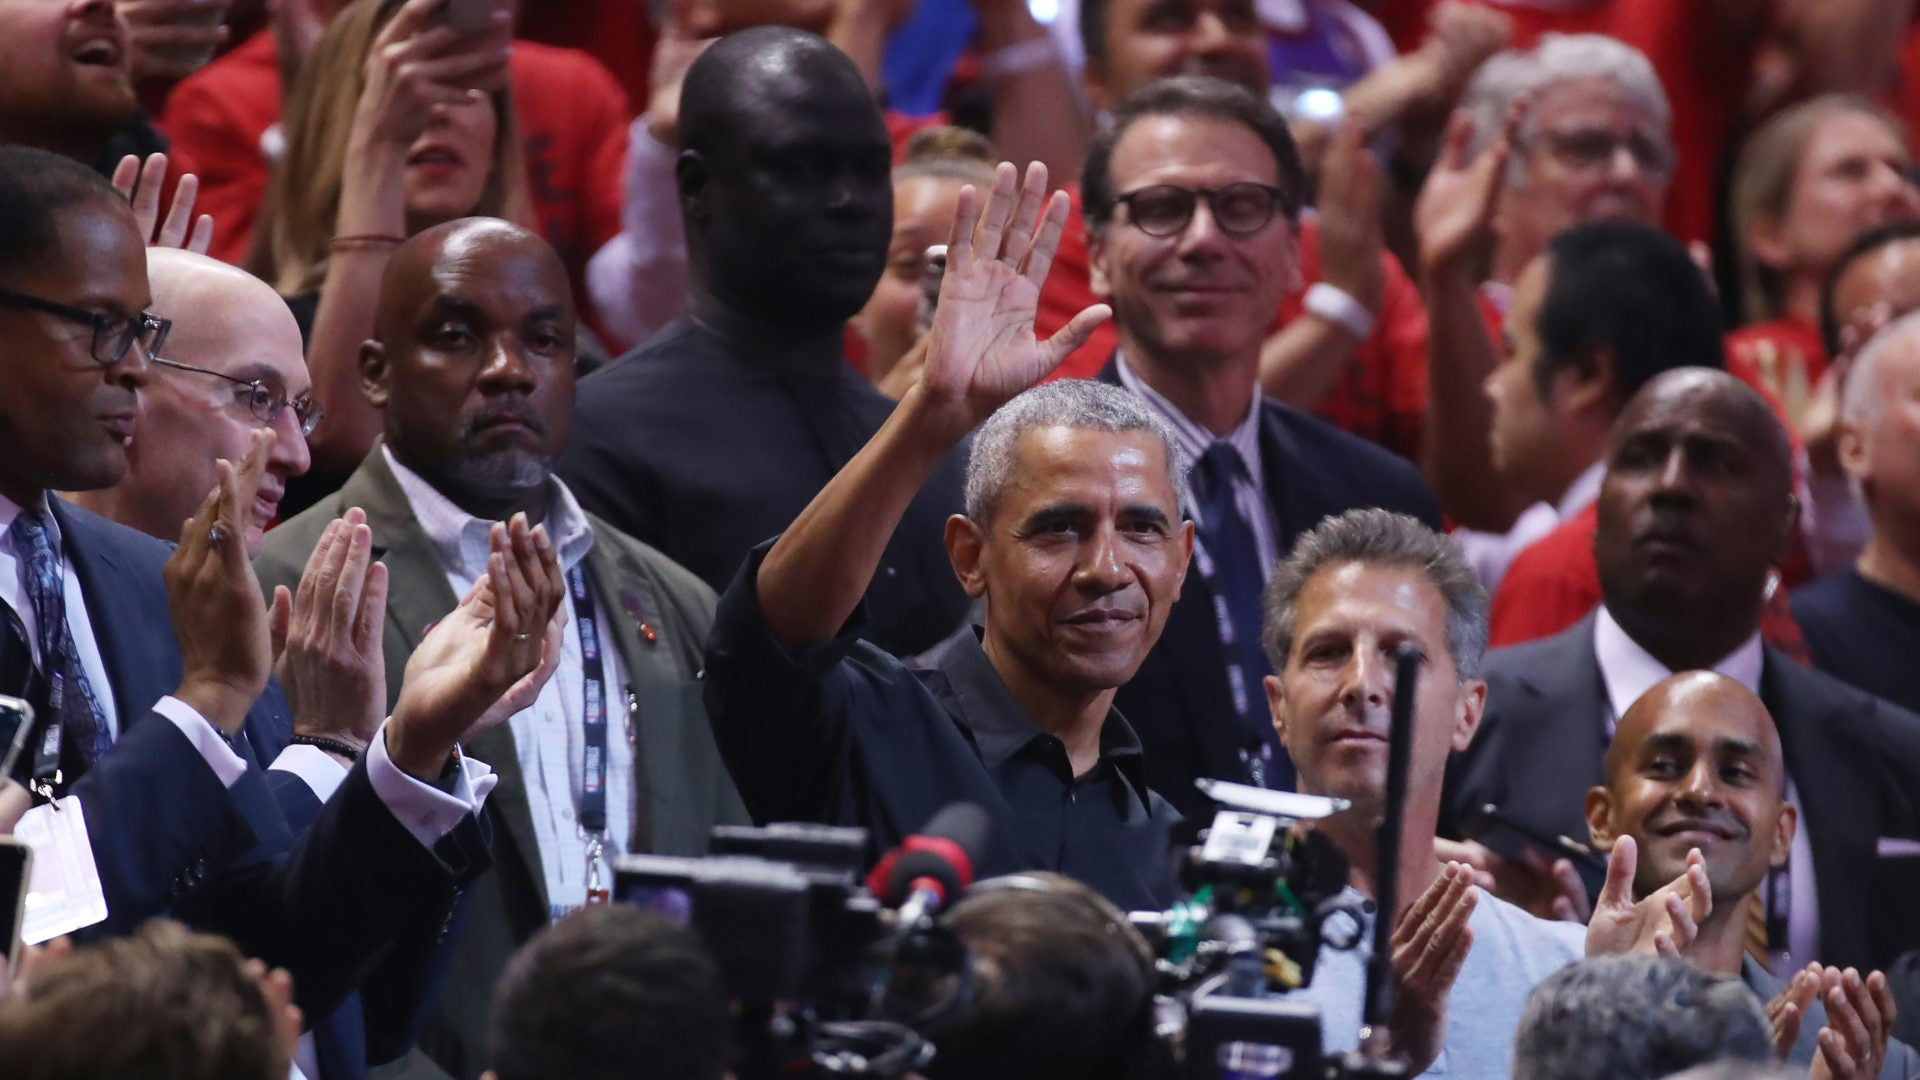 Barack Obama Receives 'MVP' Welcome During NBA Playoffs In Toronto